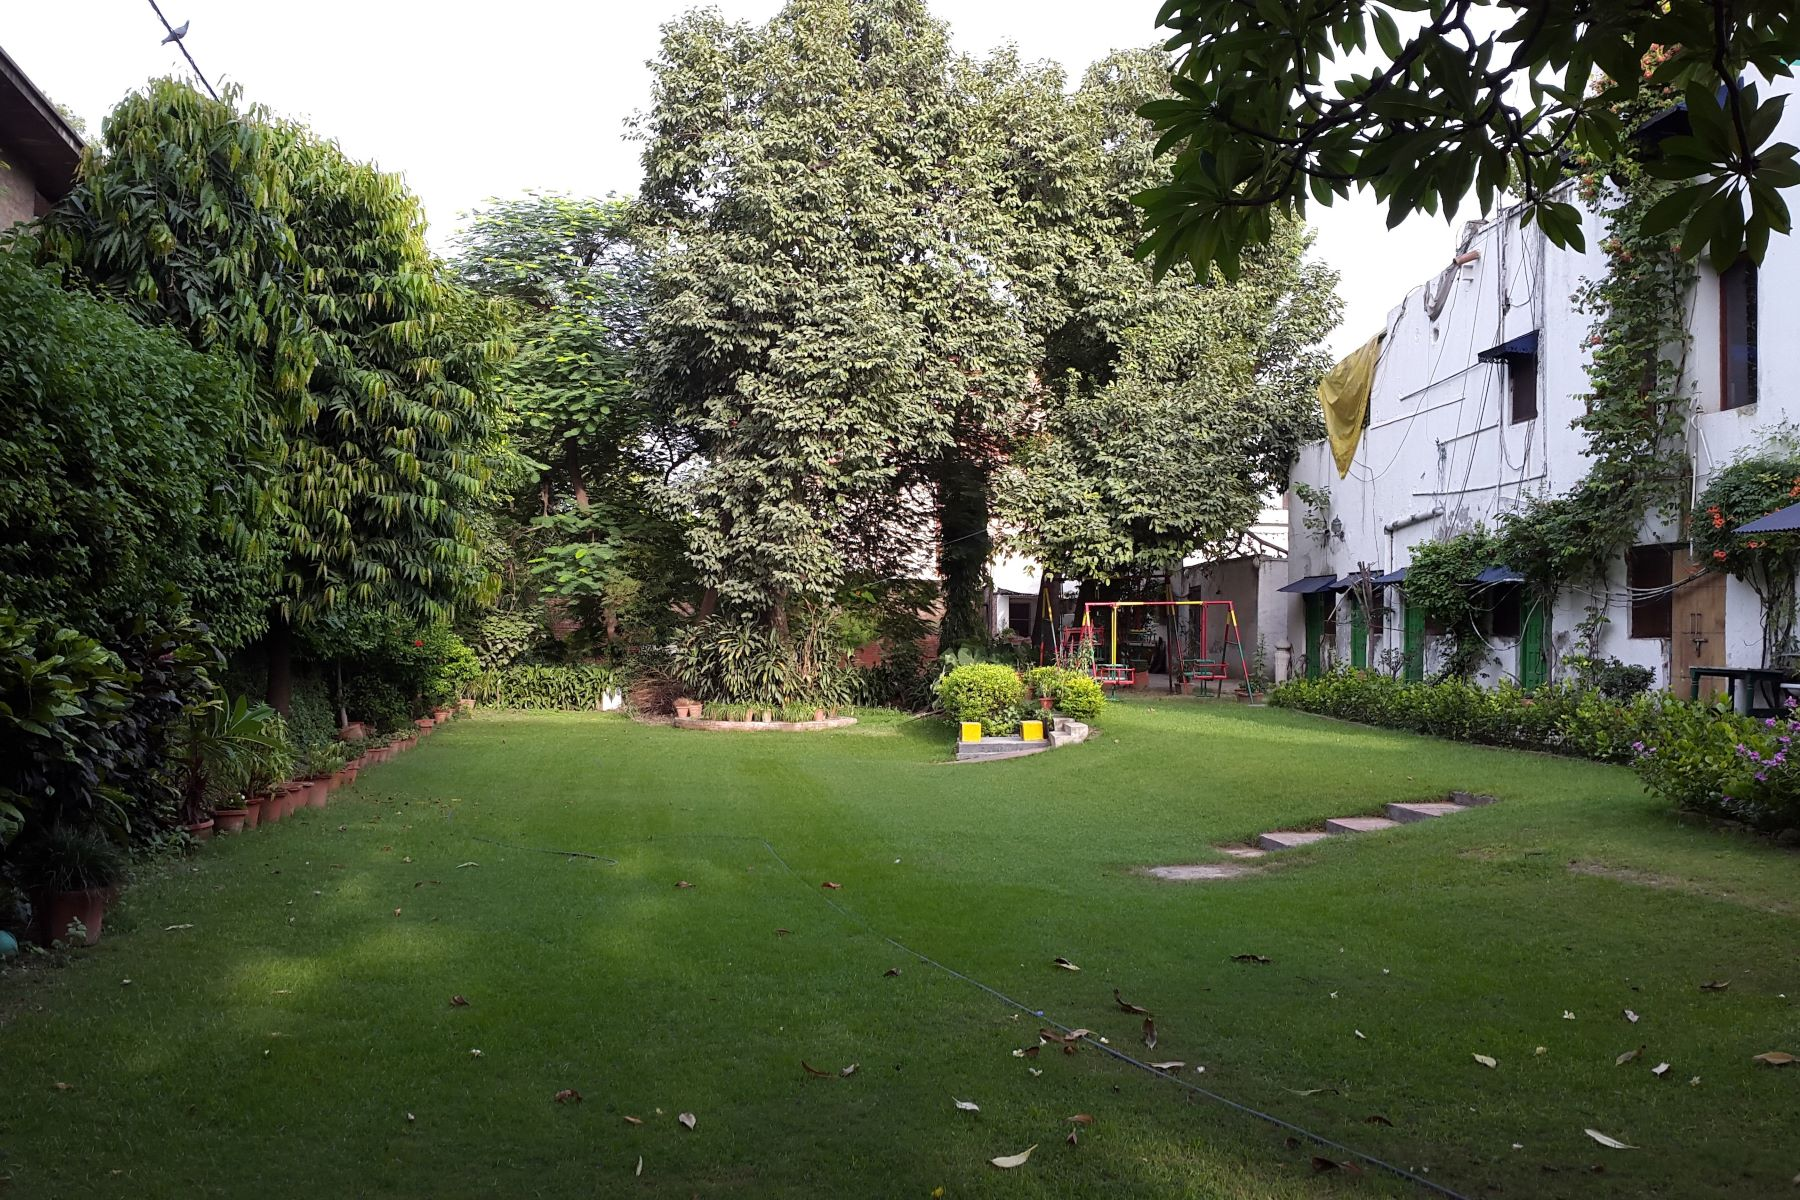 Multi-Family Home for Sale at Civil Lines-Large Bungalow for Redevelopment New Delhi, Delhi, 110054 India